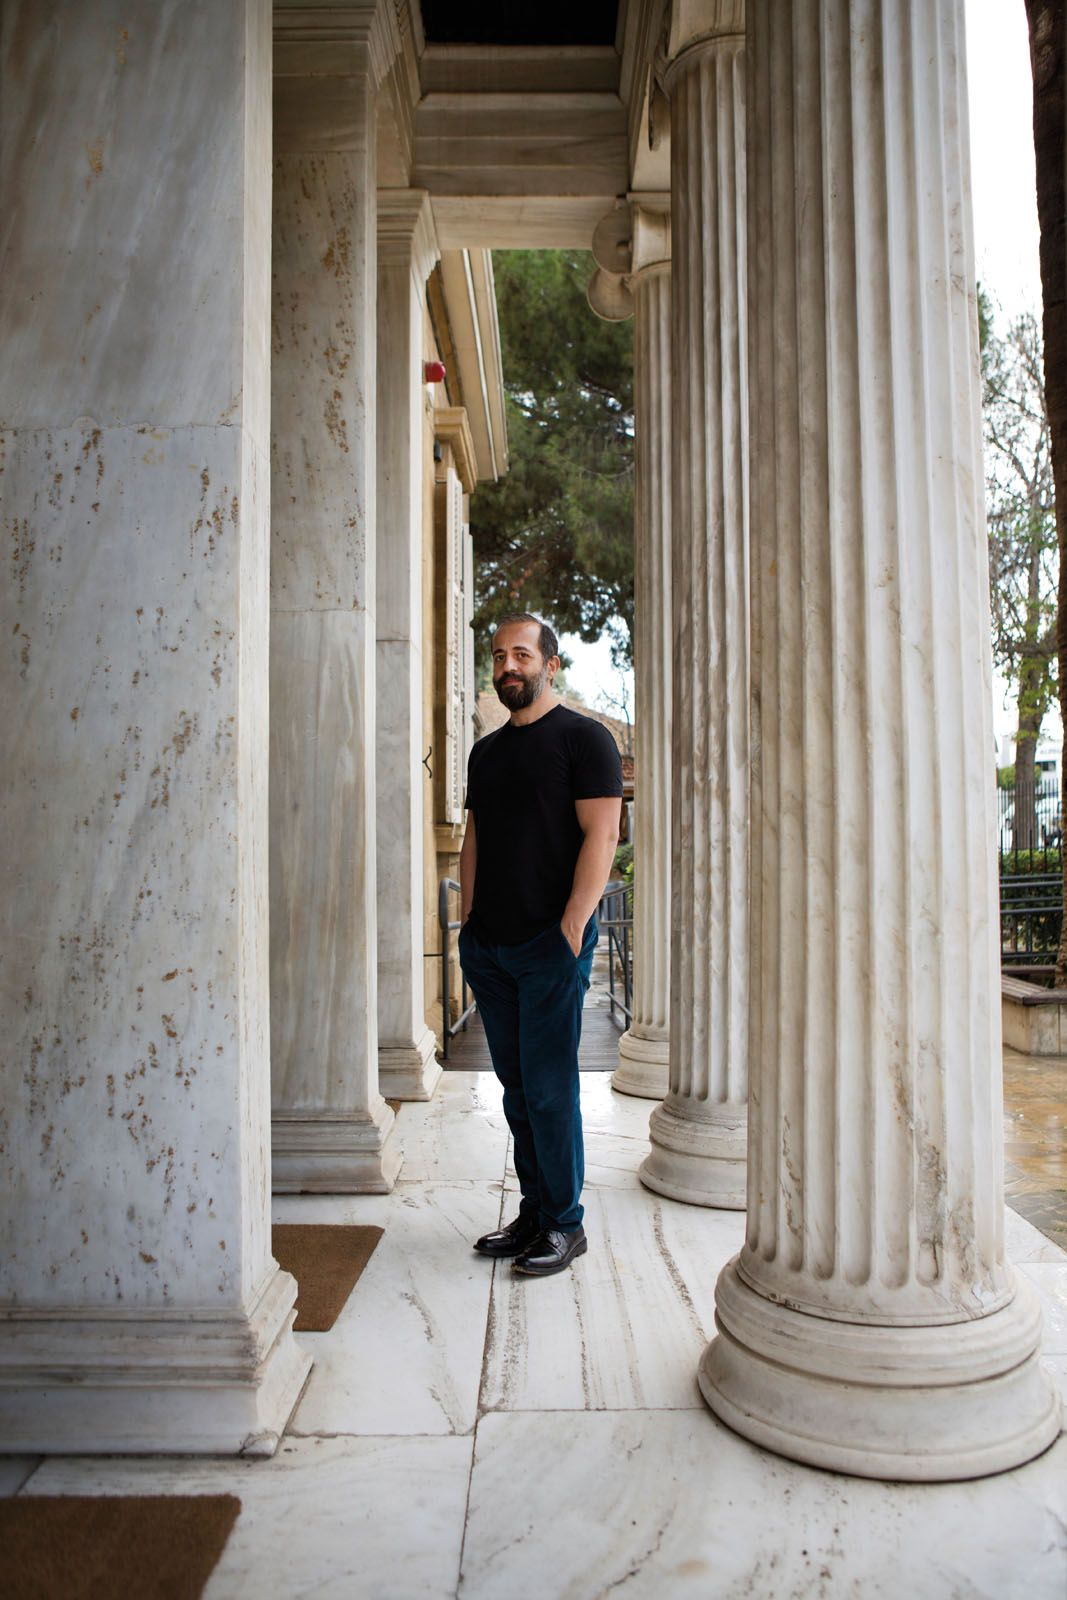 Cypriot-born designer Michael Anastassiades (photo: Rich Stapleton)